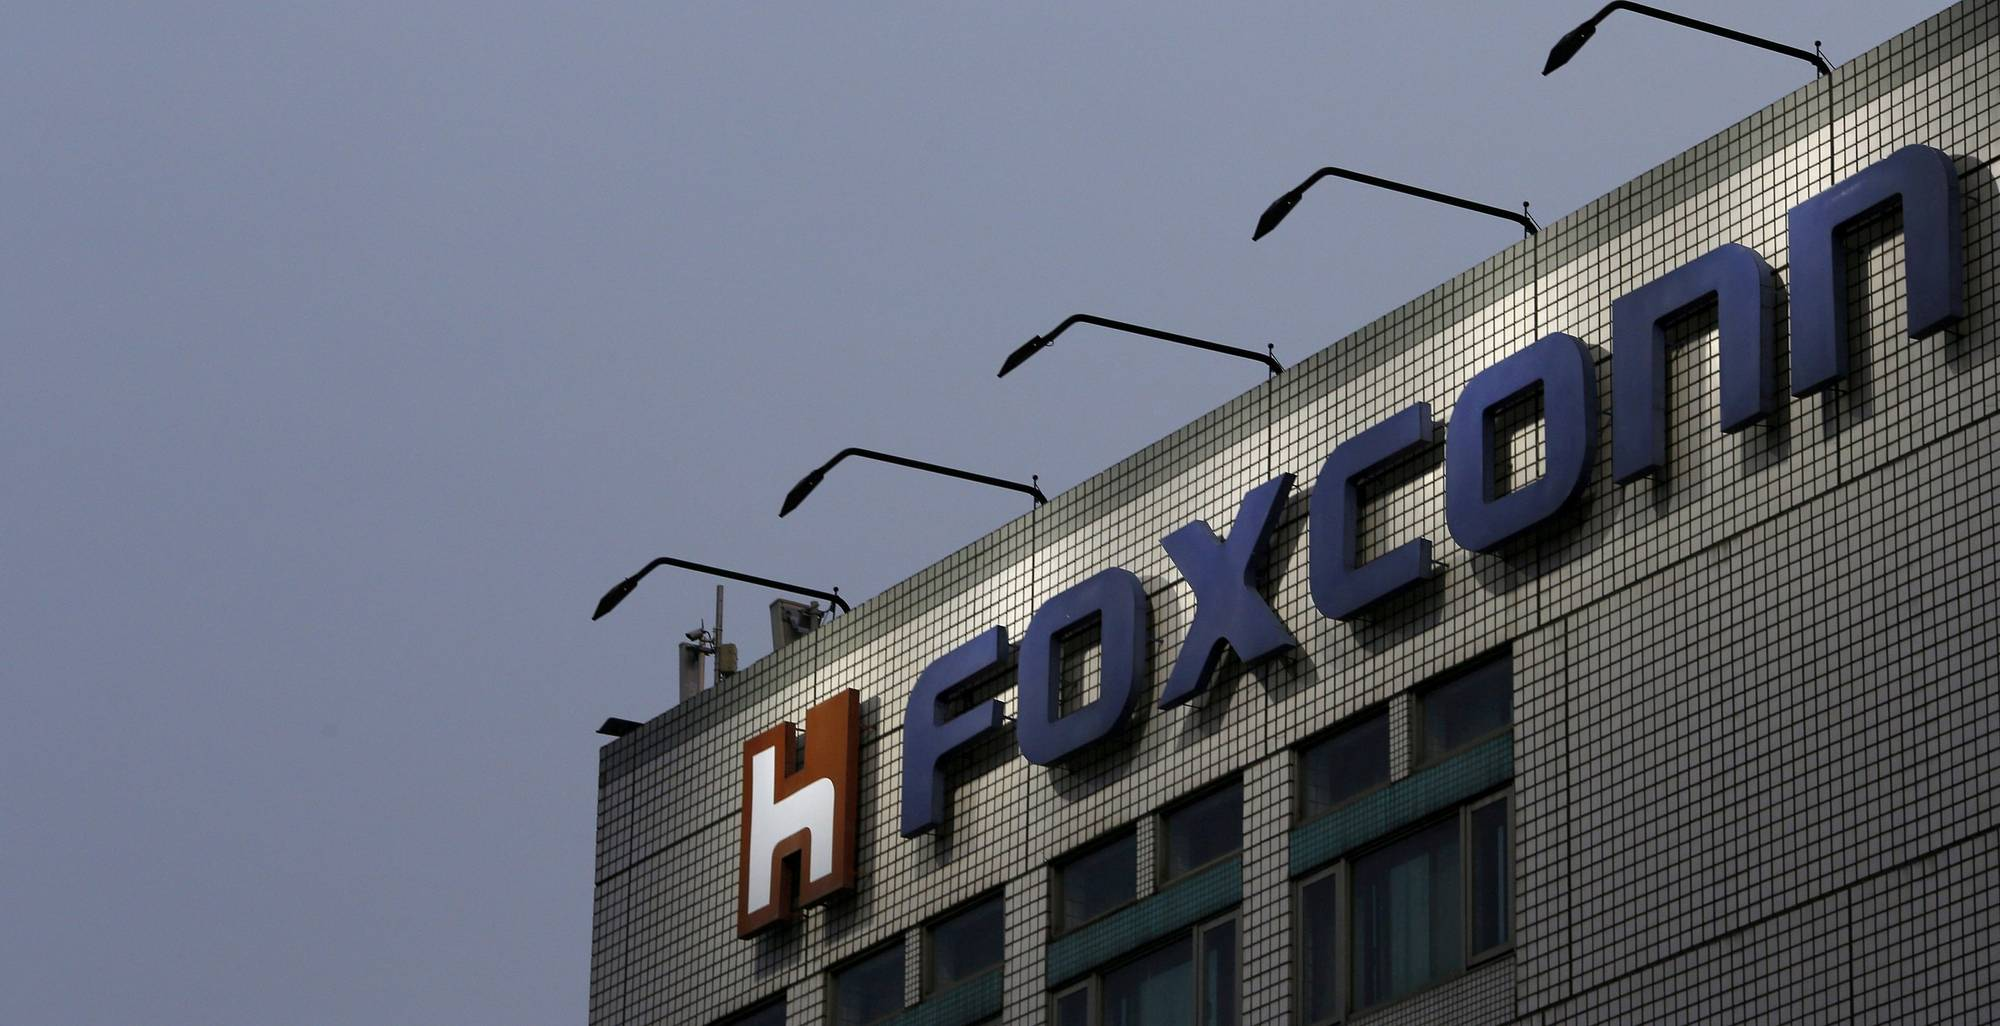 Apple and Foxconn broke Chinese labor law to build latest iPhones